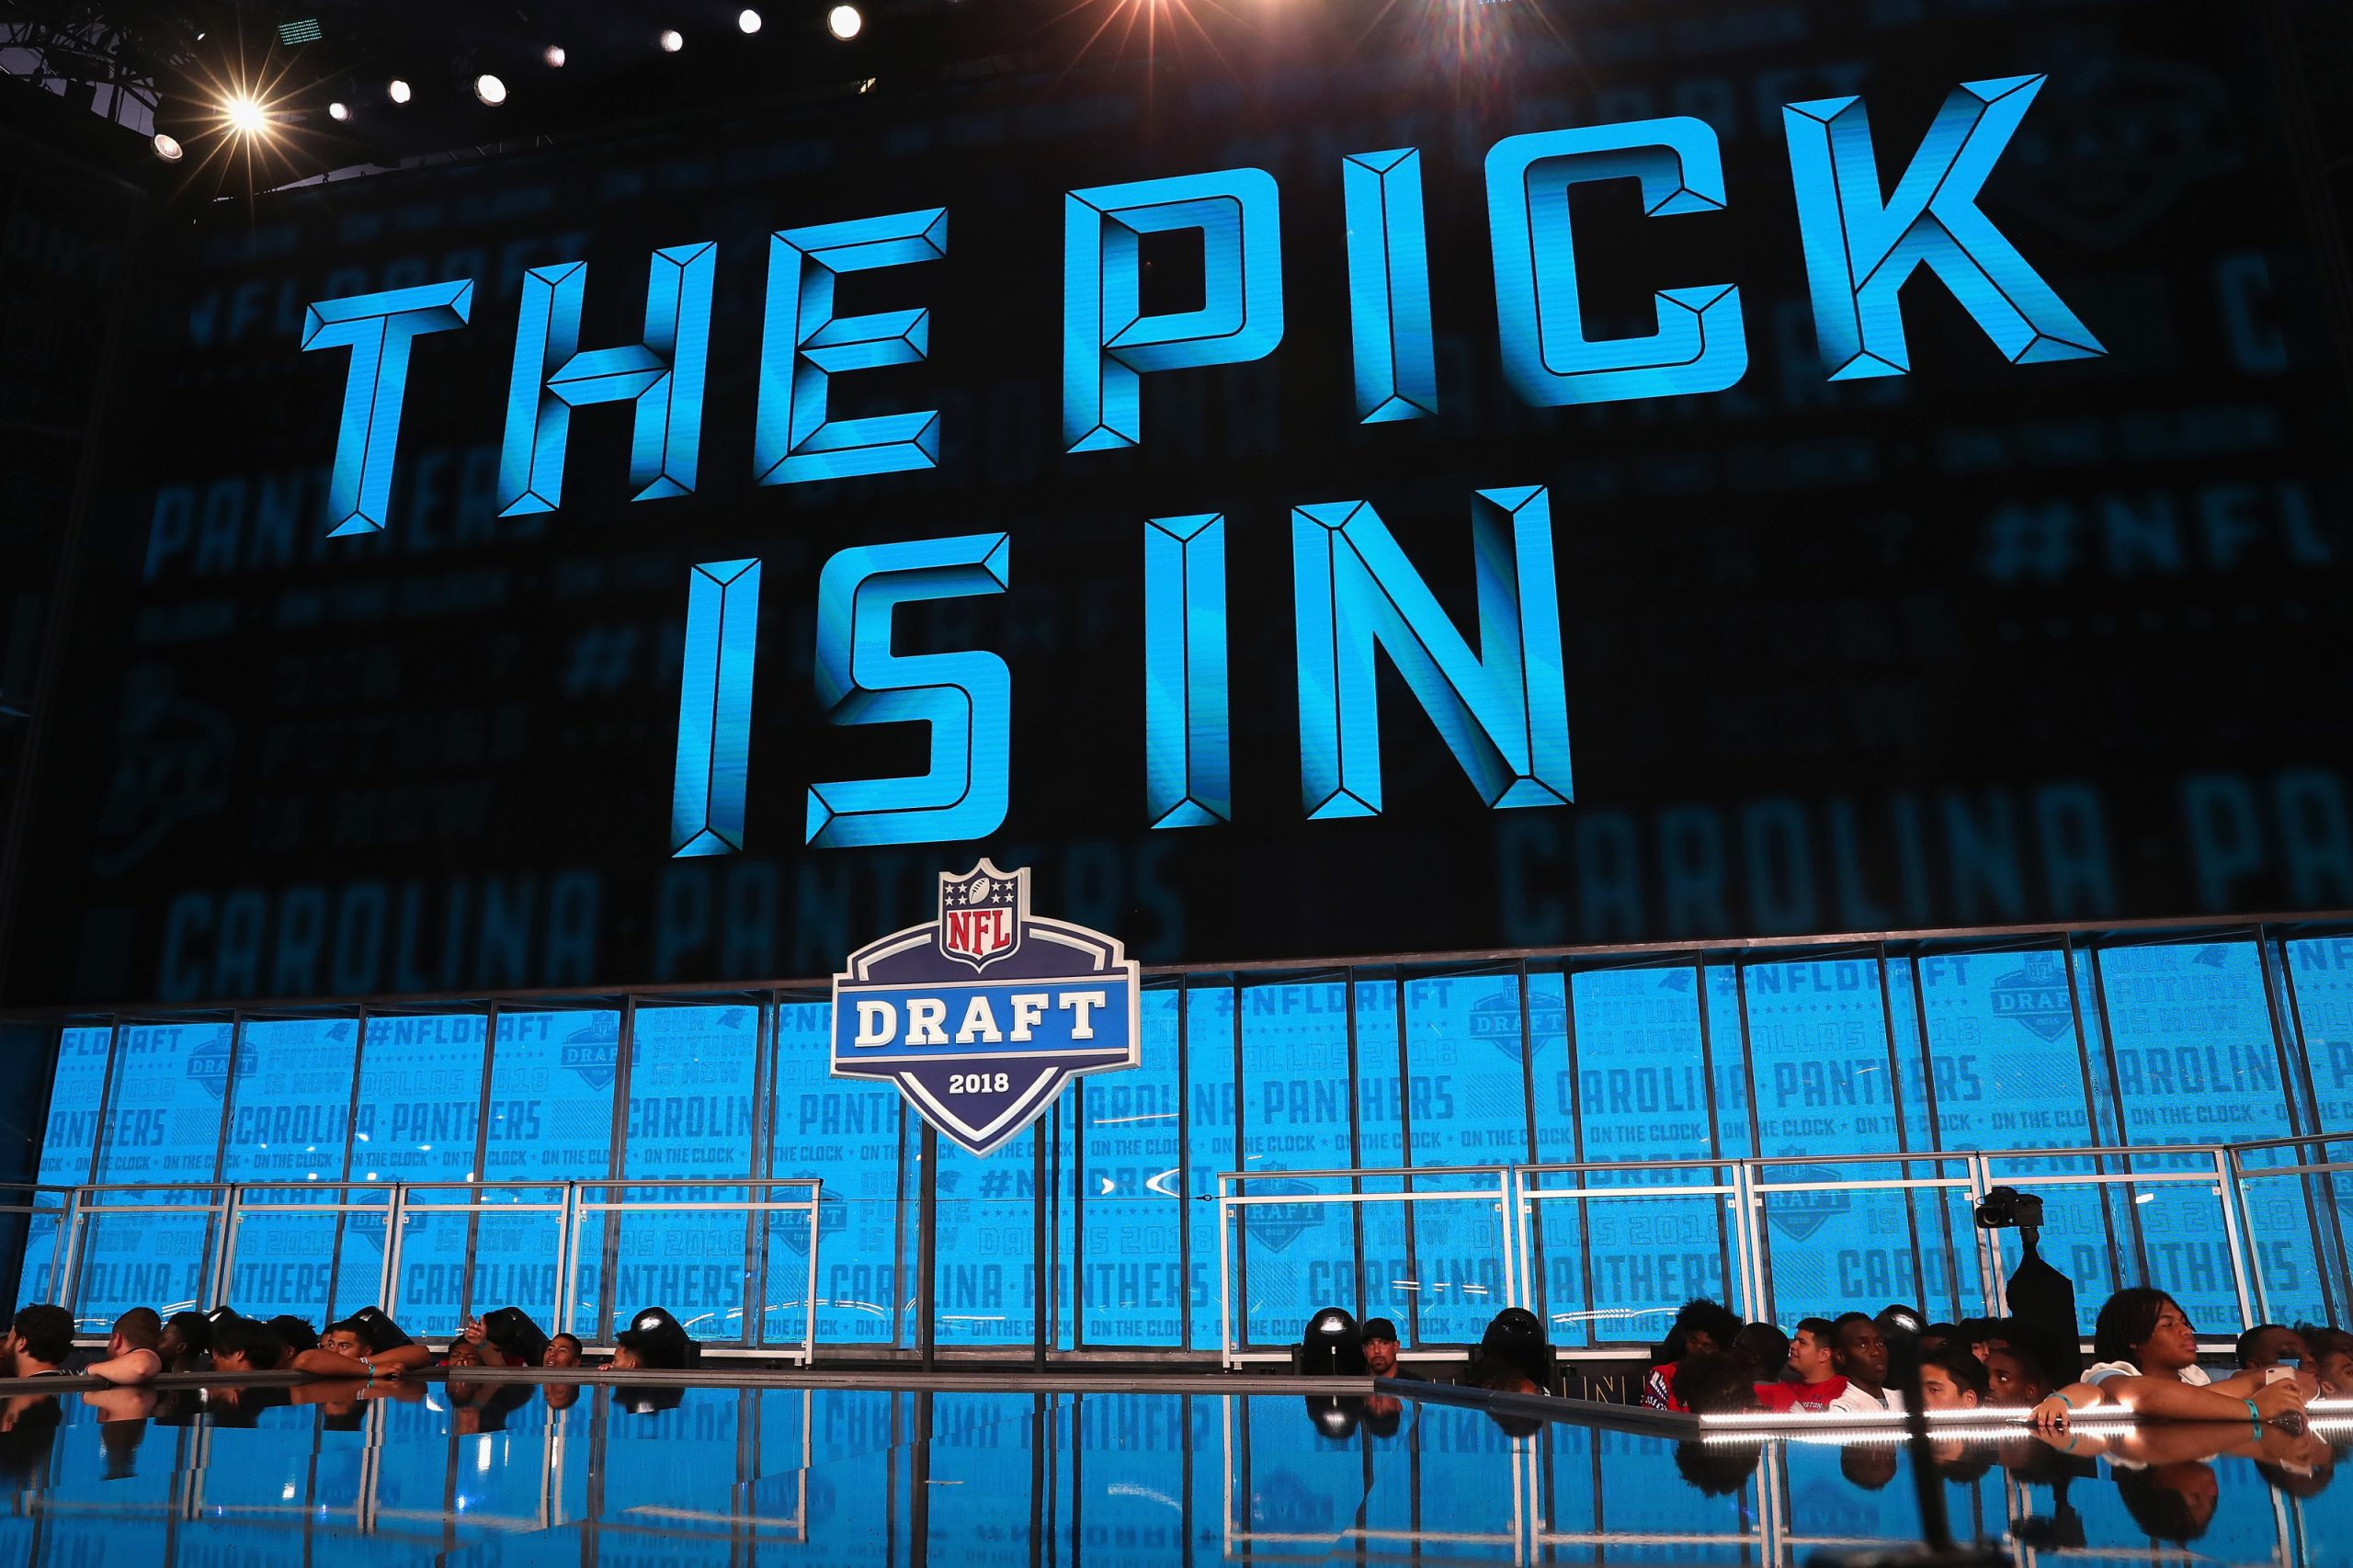 Draft de los Carolina Panthers 2020: Todo defensa